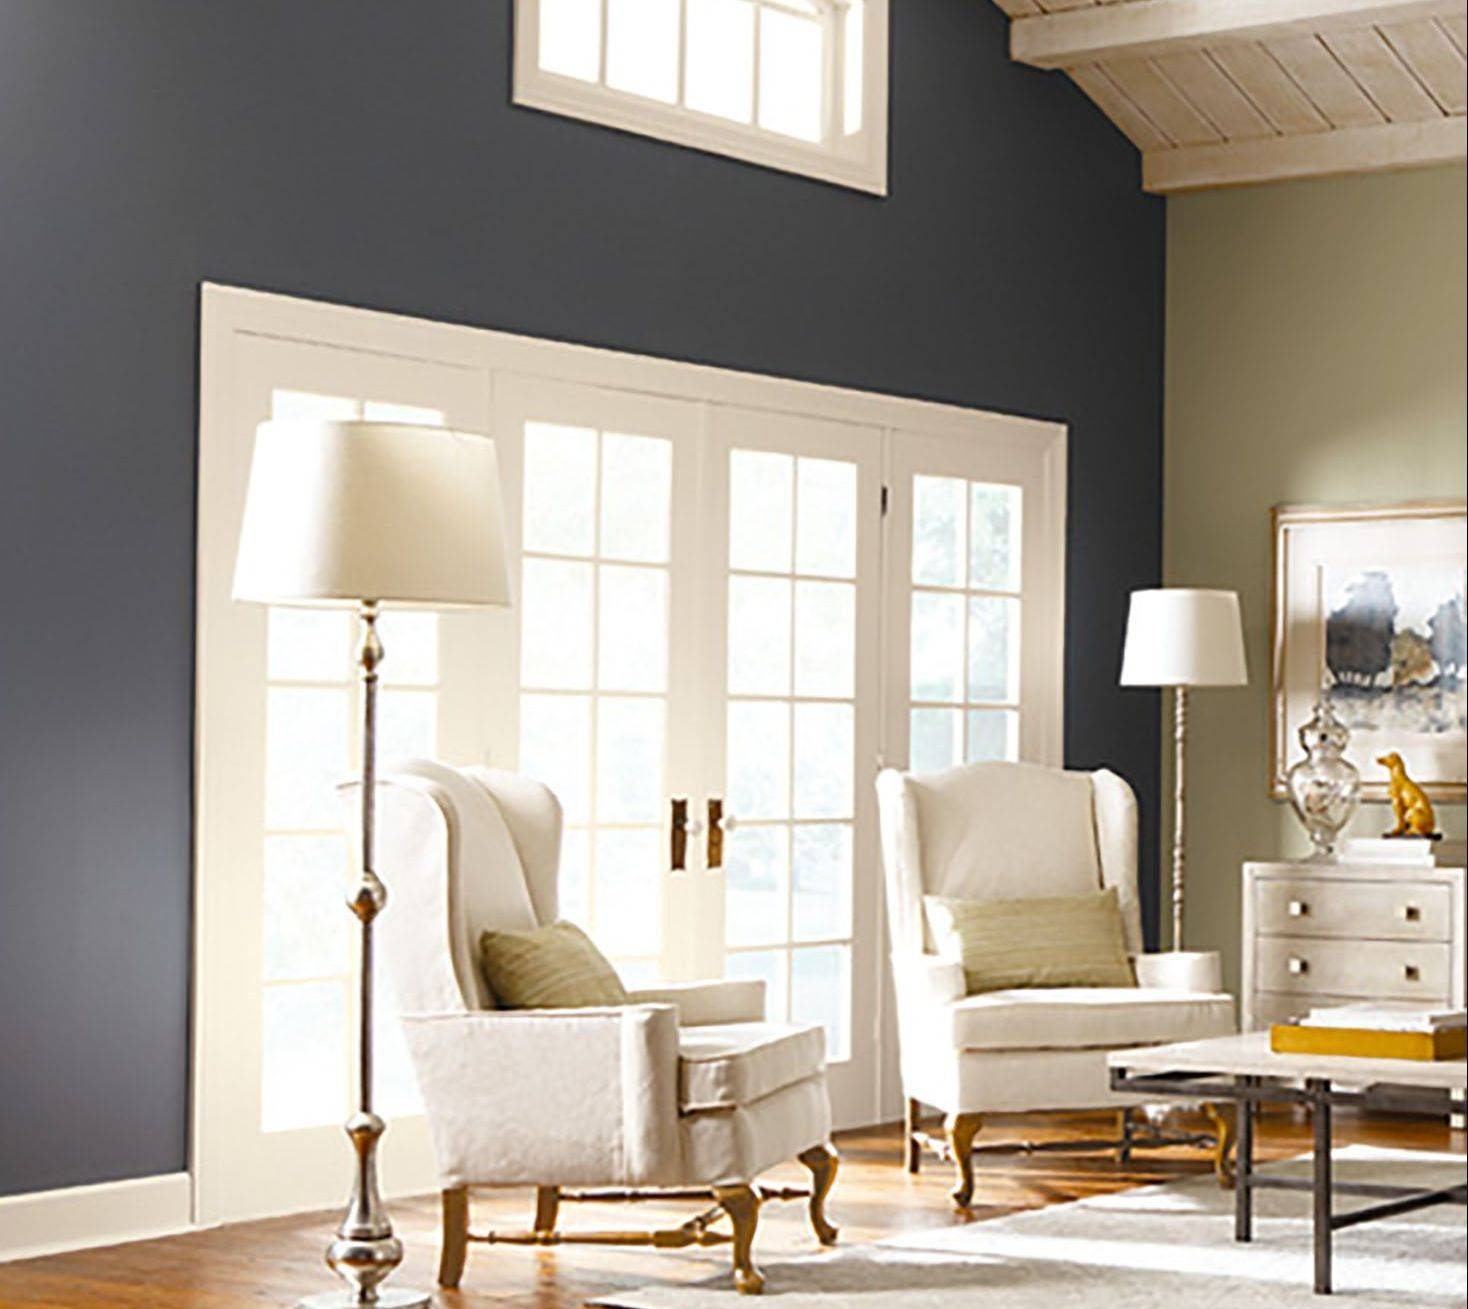 Homeowners are using accent walls to bring in bolder colors than they might otherwise choose.